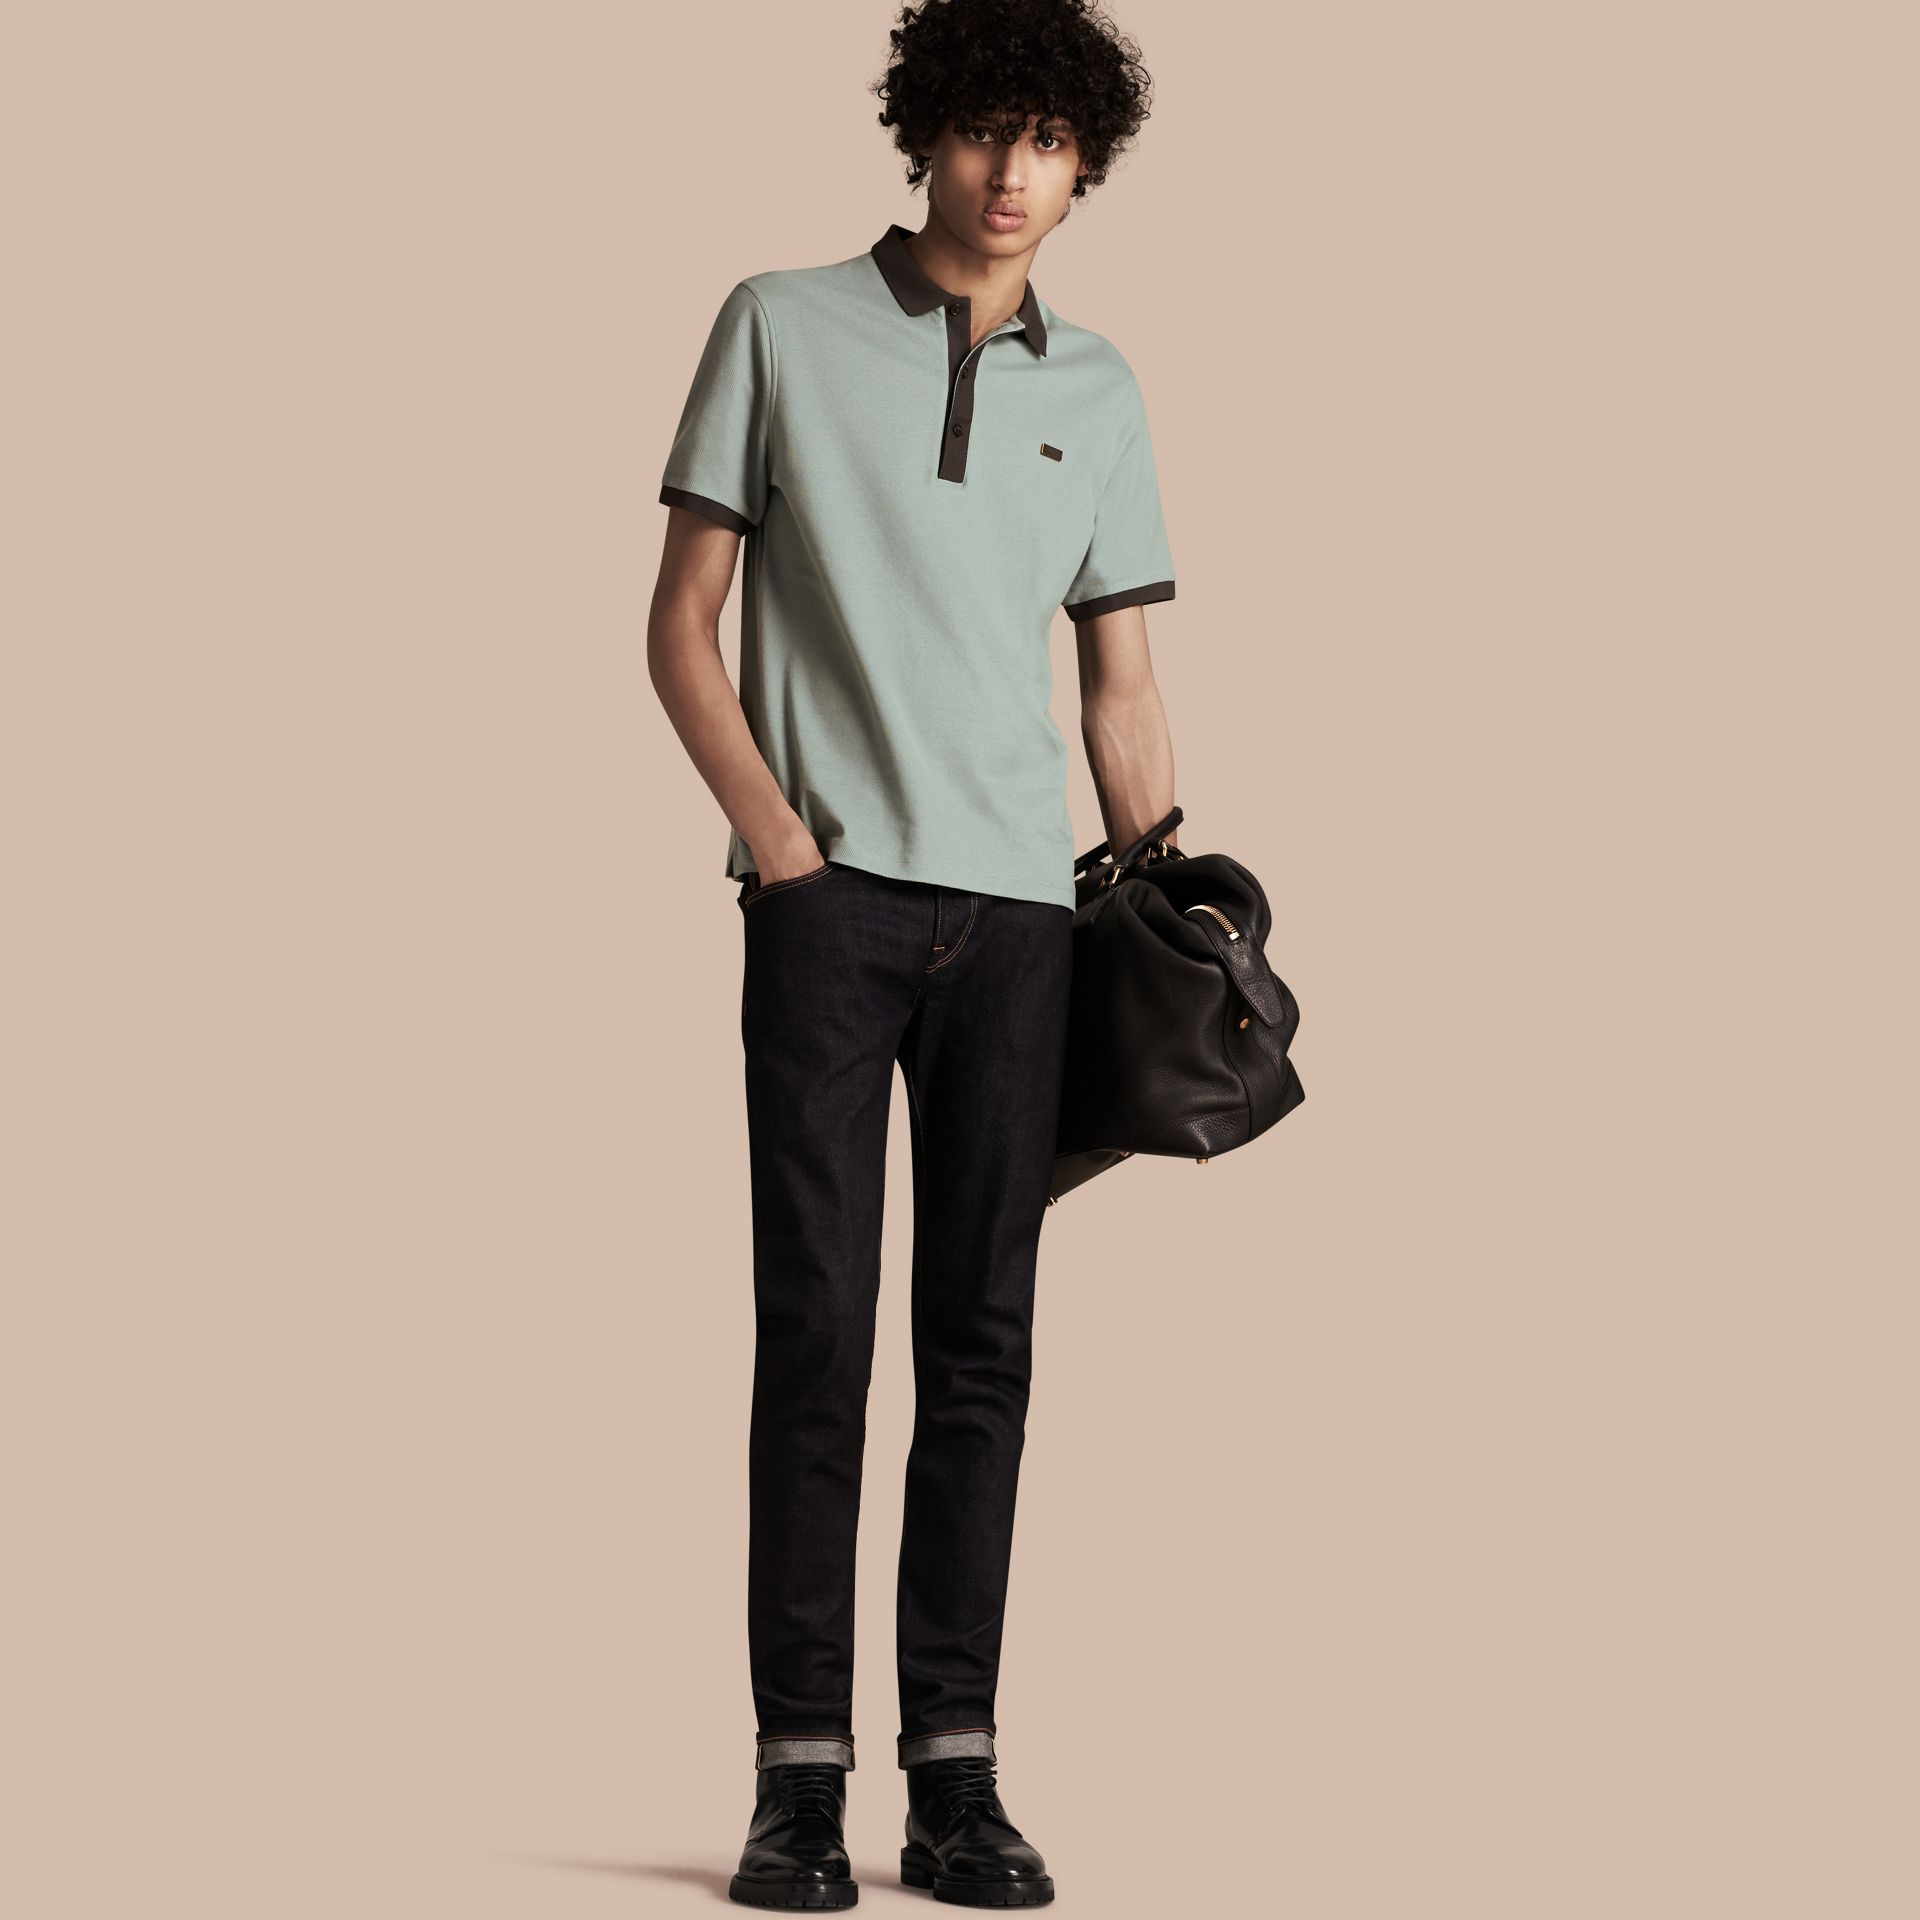 Eucalyptus green/charcoal Mercerised Cotton Piqué Polo Shirt Eucalyptus Green/charcoal - gallery image 1